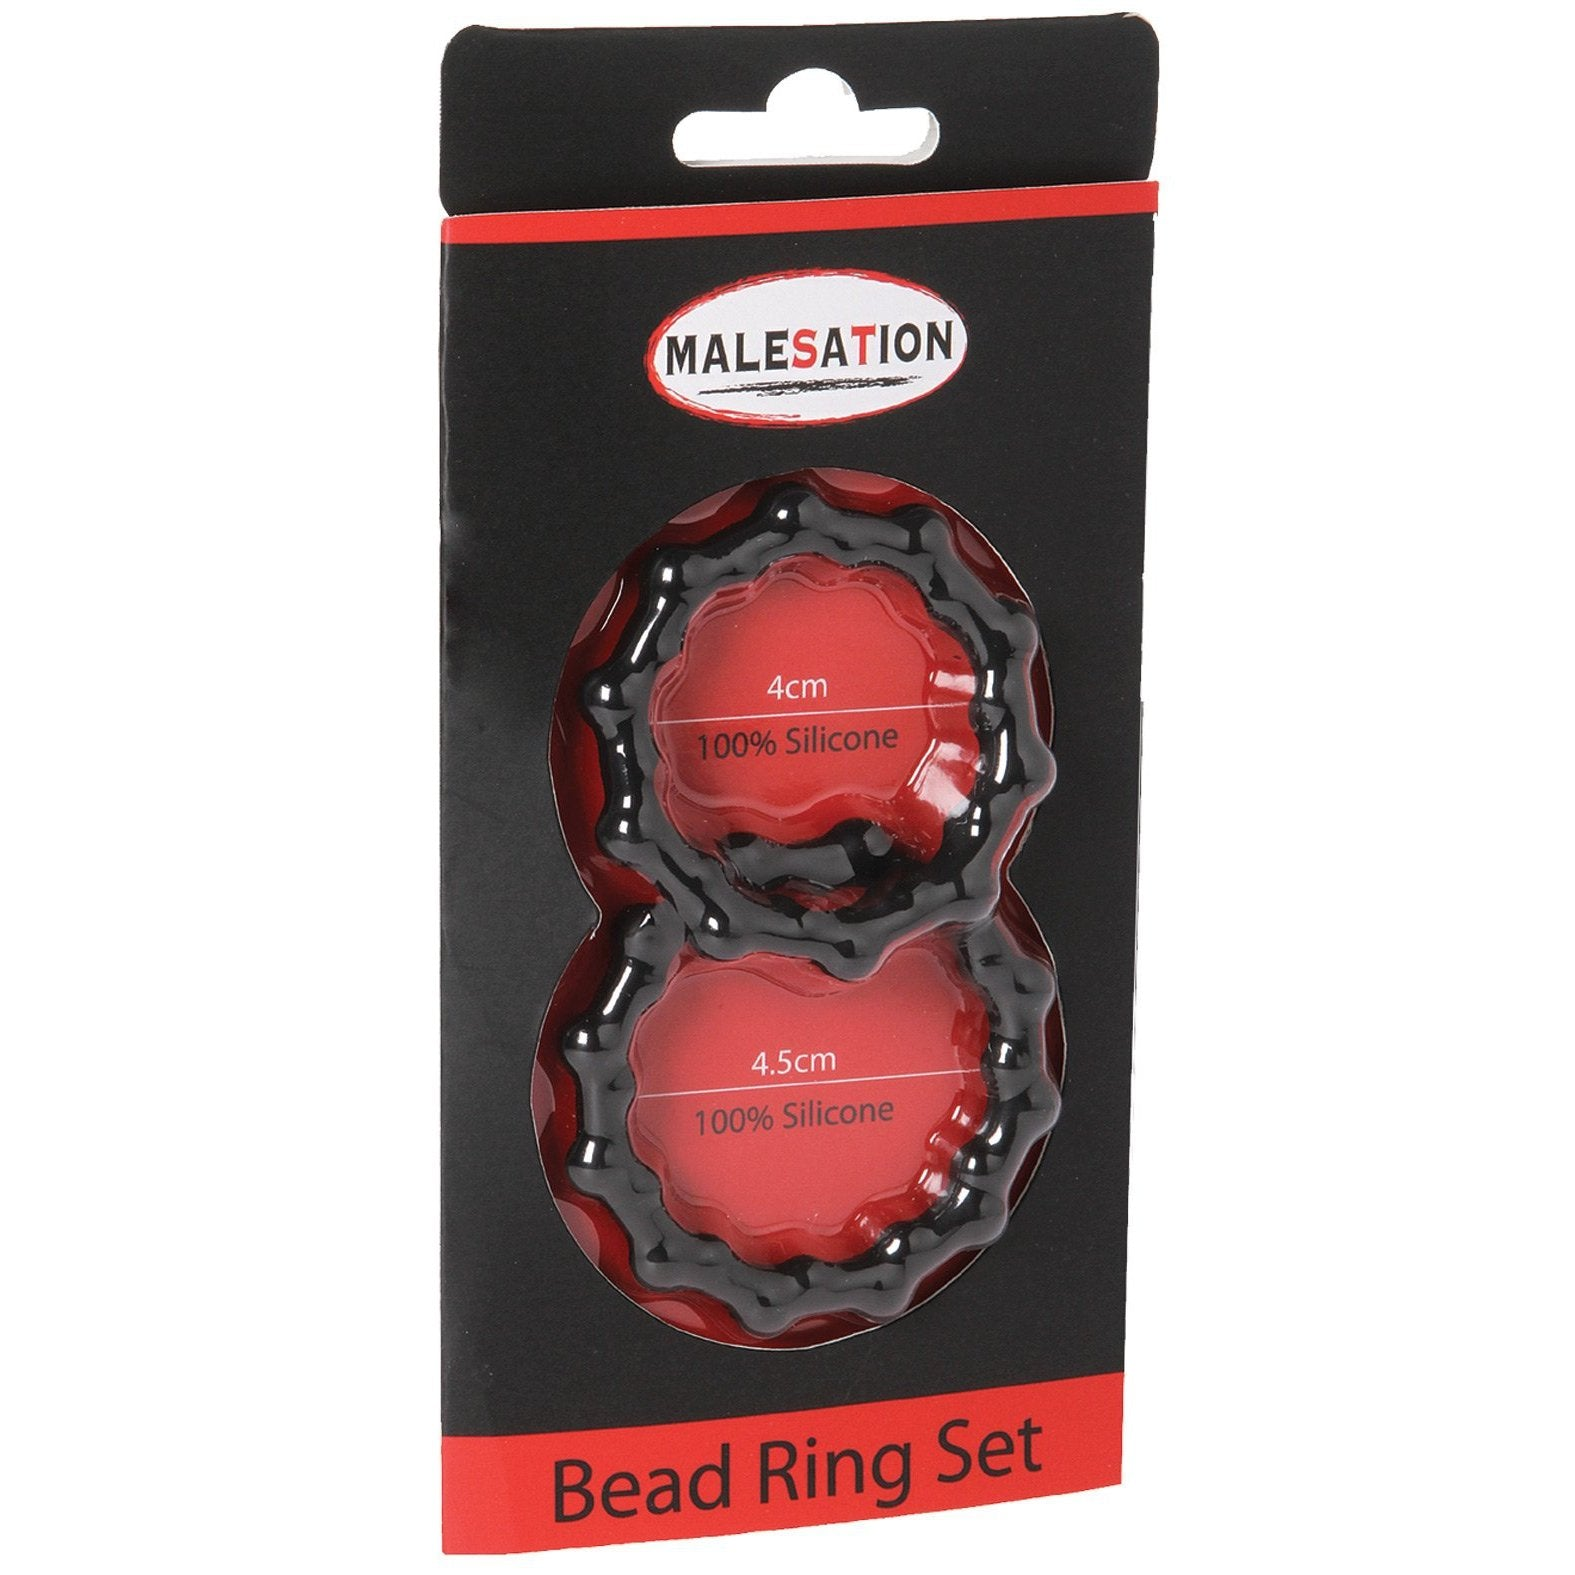 Malesation Bead Cock Ring Set - Gay Men's Sex Toys - Adam's Toy Box